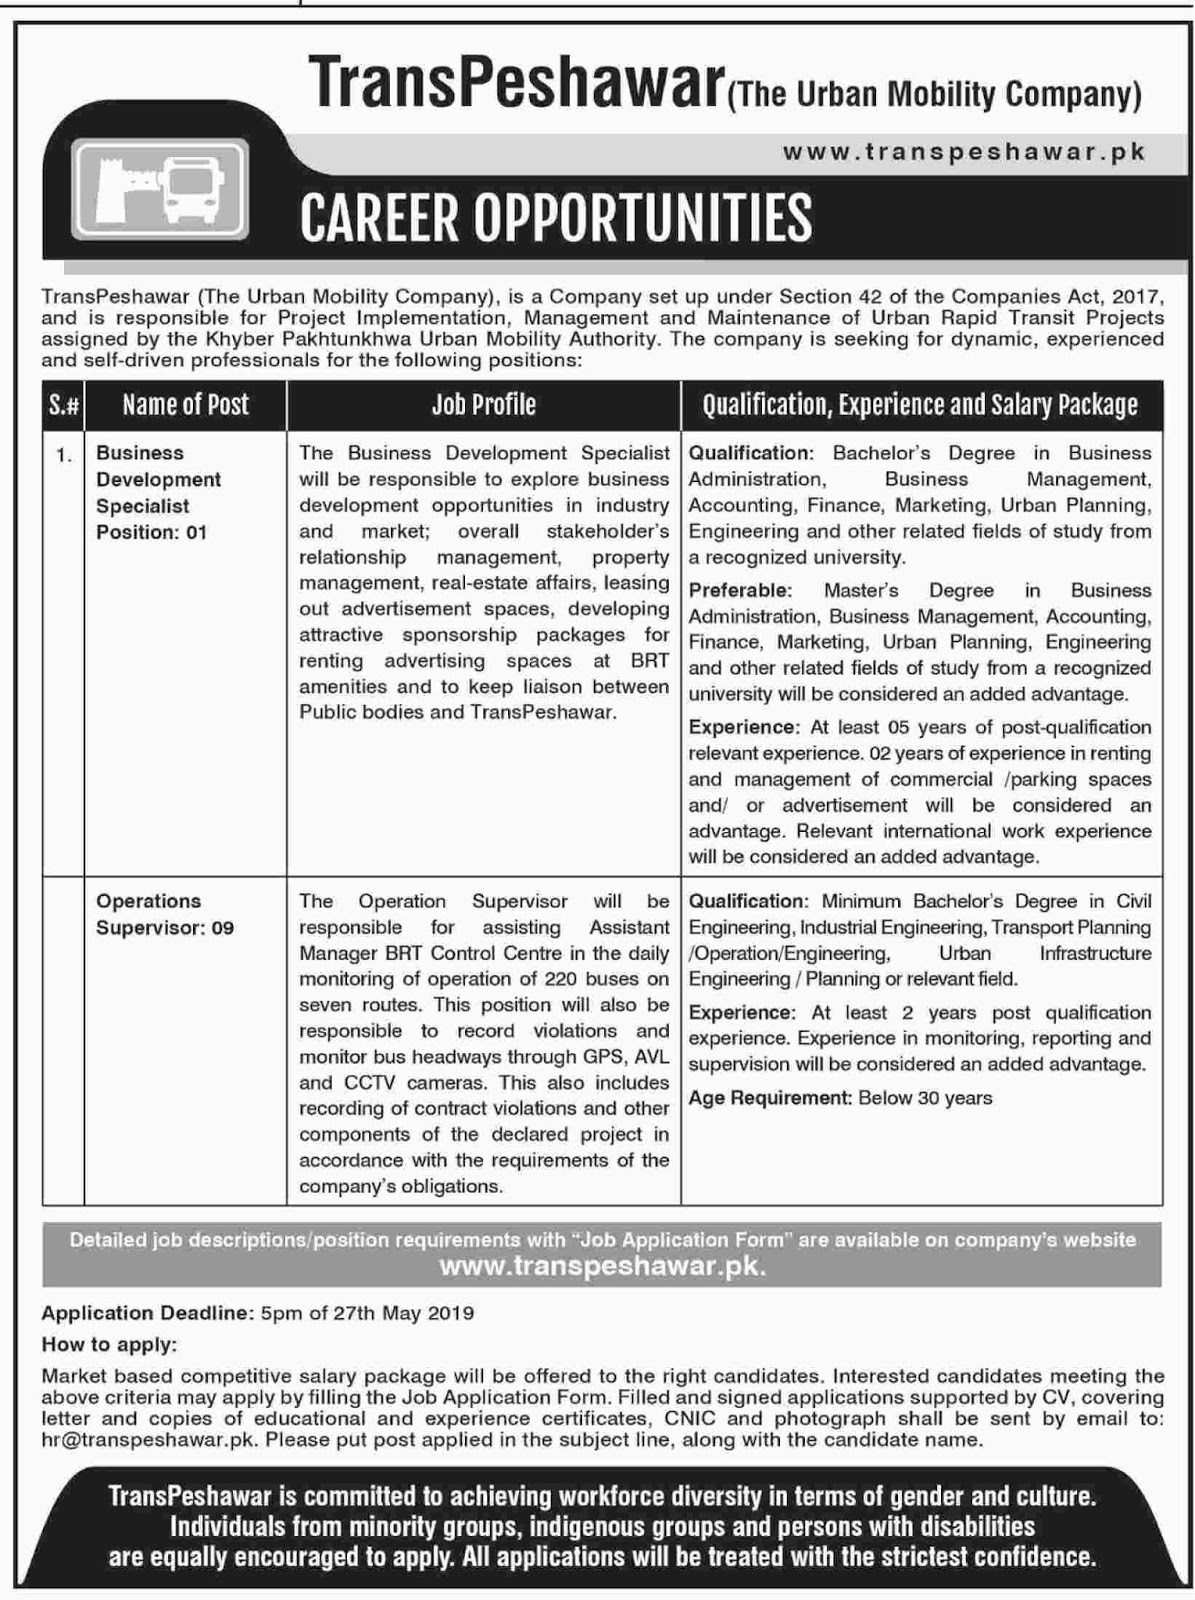 Transpeshawar The Urban Mobility Company Jobs May 2019